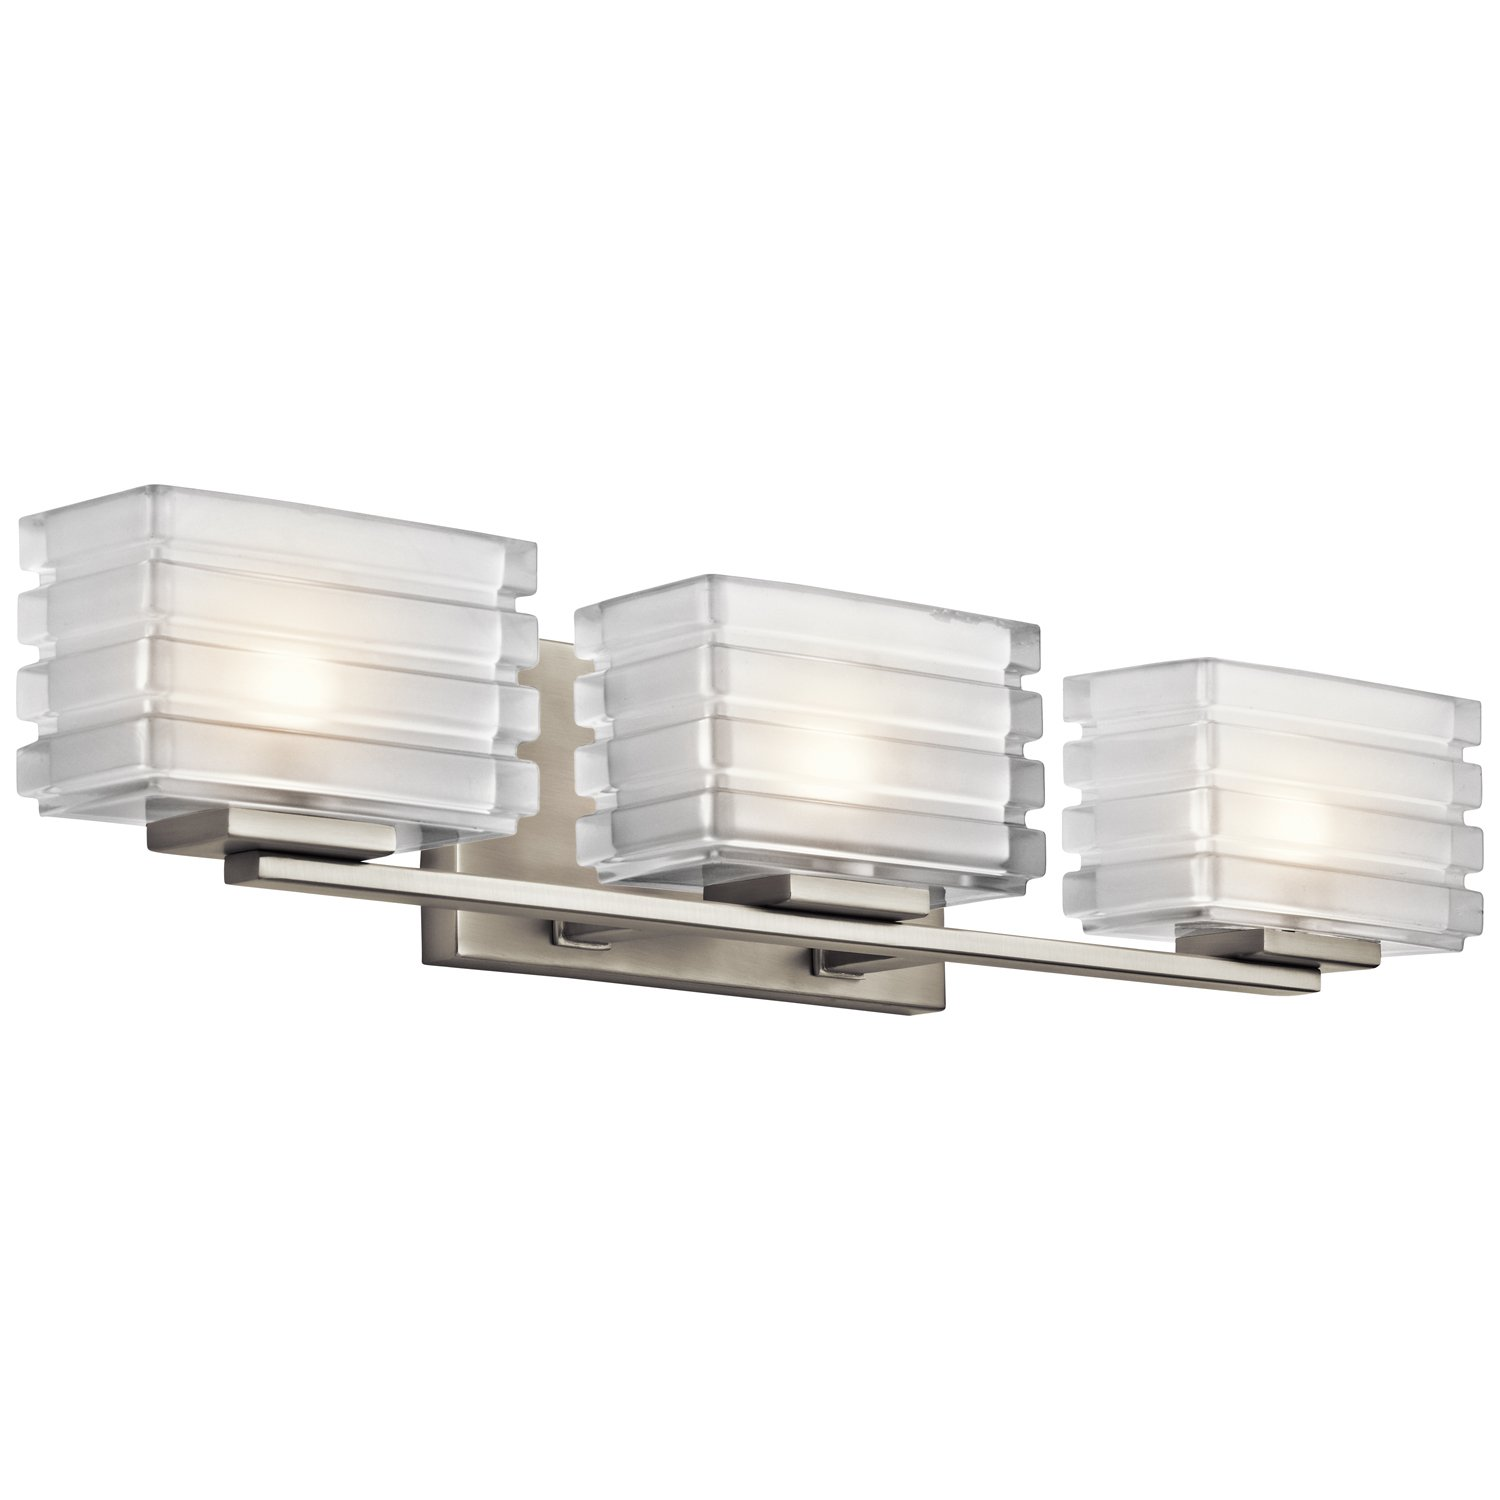 Kichler 45479NI Bazely Bath 3-Light Halogen Brushed Nickel - - Amazon.com  sc 1 st  Amazon.com & Kichler 45479NI Bazely Bath 3-Light Halogen Brushed Nickel ...